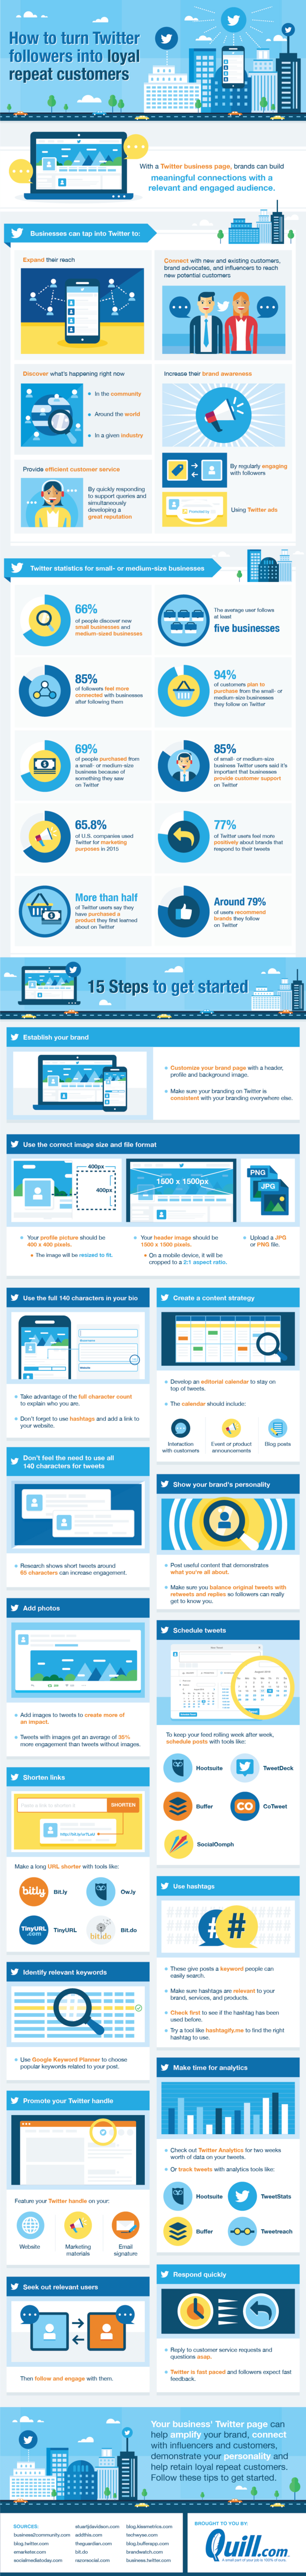 How to Turn Twitter Followers into Loyal Customers